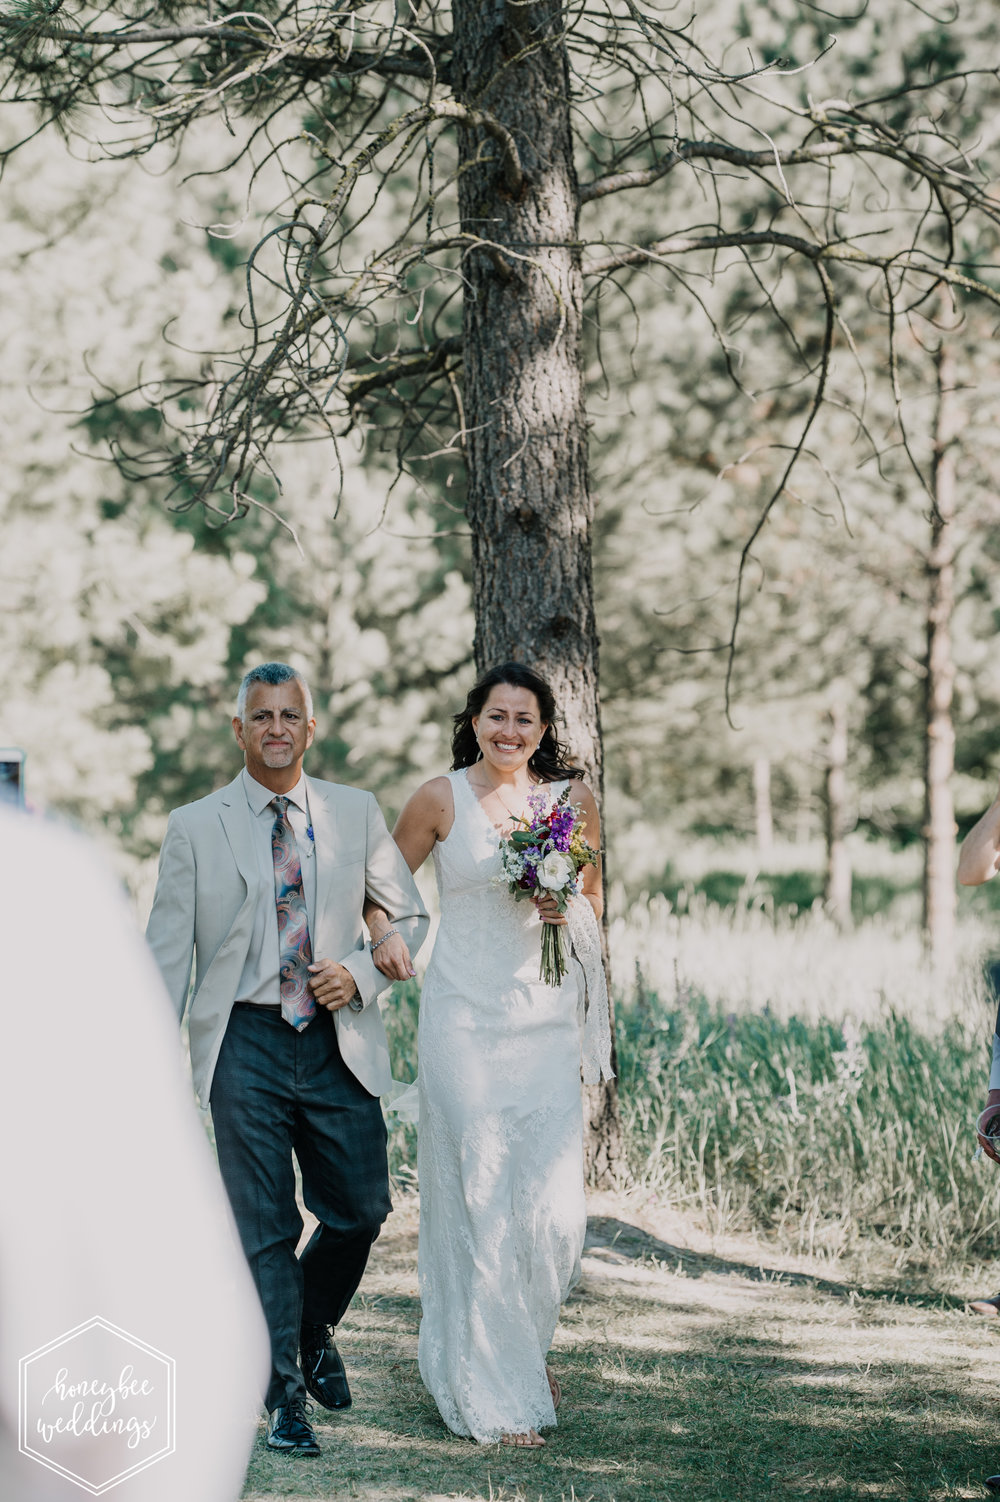 289 White Raven Wedding_Montana Wedding Photographer_Honeybee Weddings_ Meghan Maloney + Arza Hammond 2018-8677.jpg